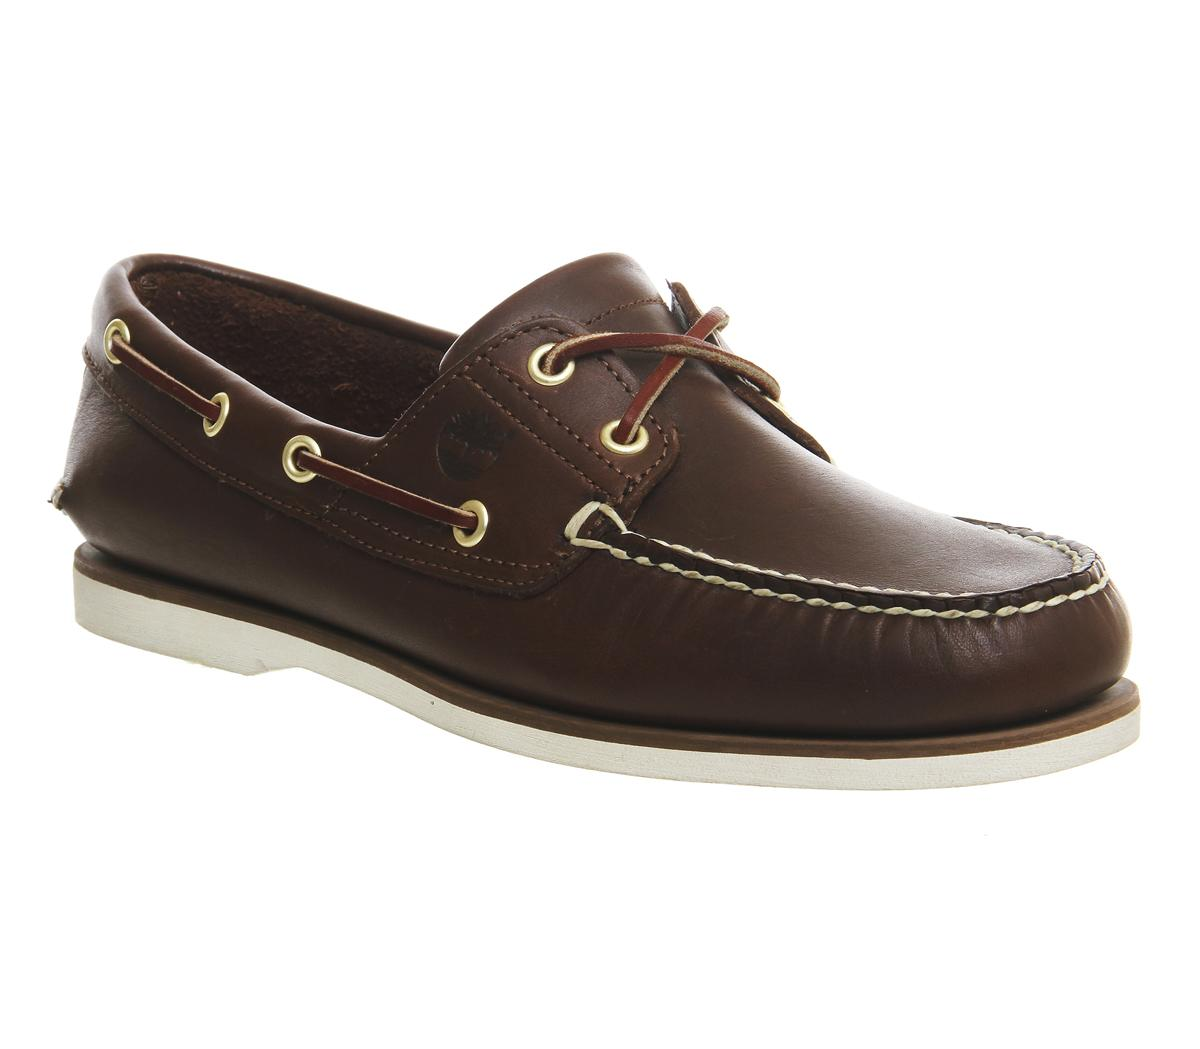 New Boat Shoes